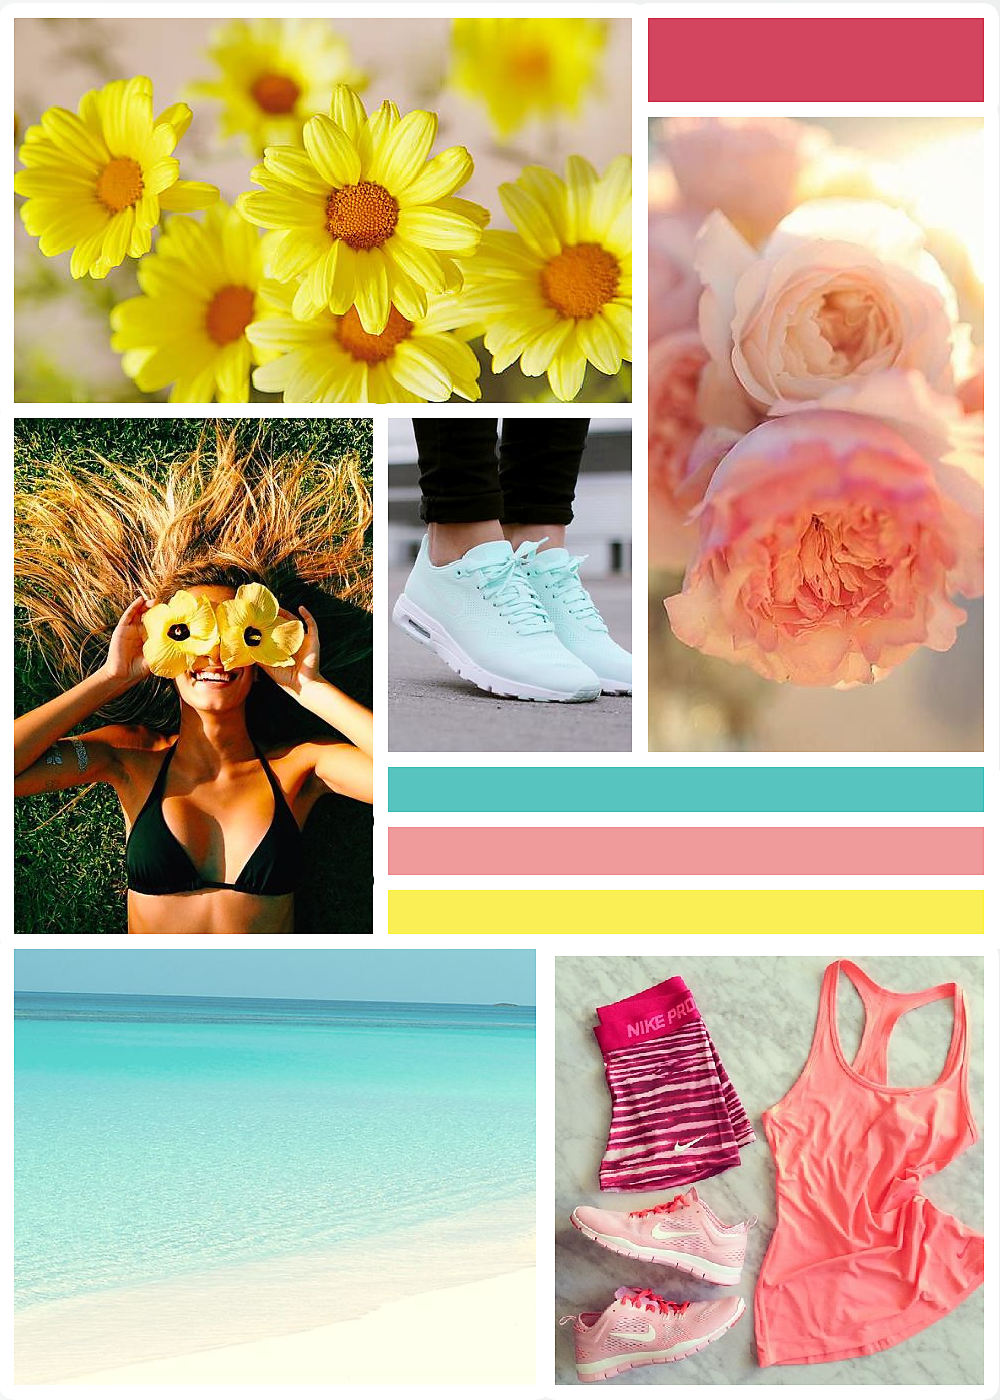 Image credits:  Daisies ,  Roses ,  Woman ,  Blue shoes ,  Beach ,  Pink sports